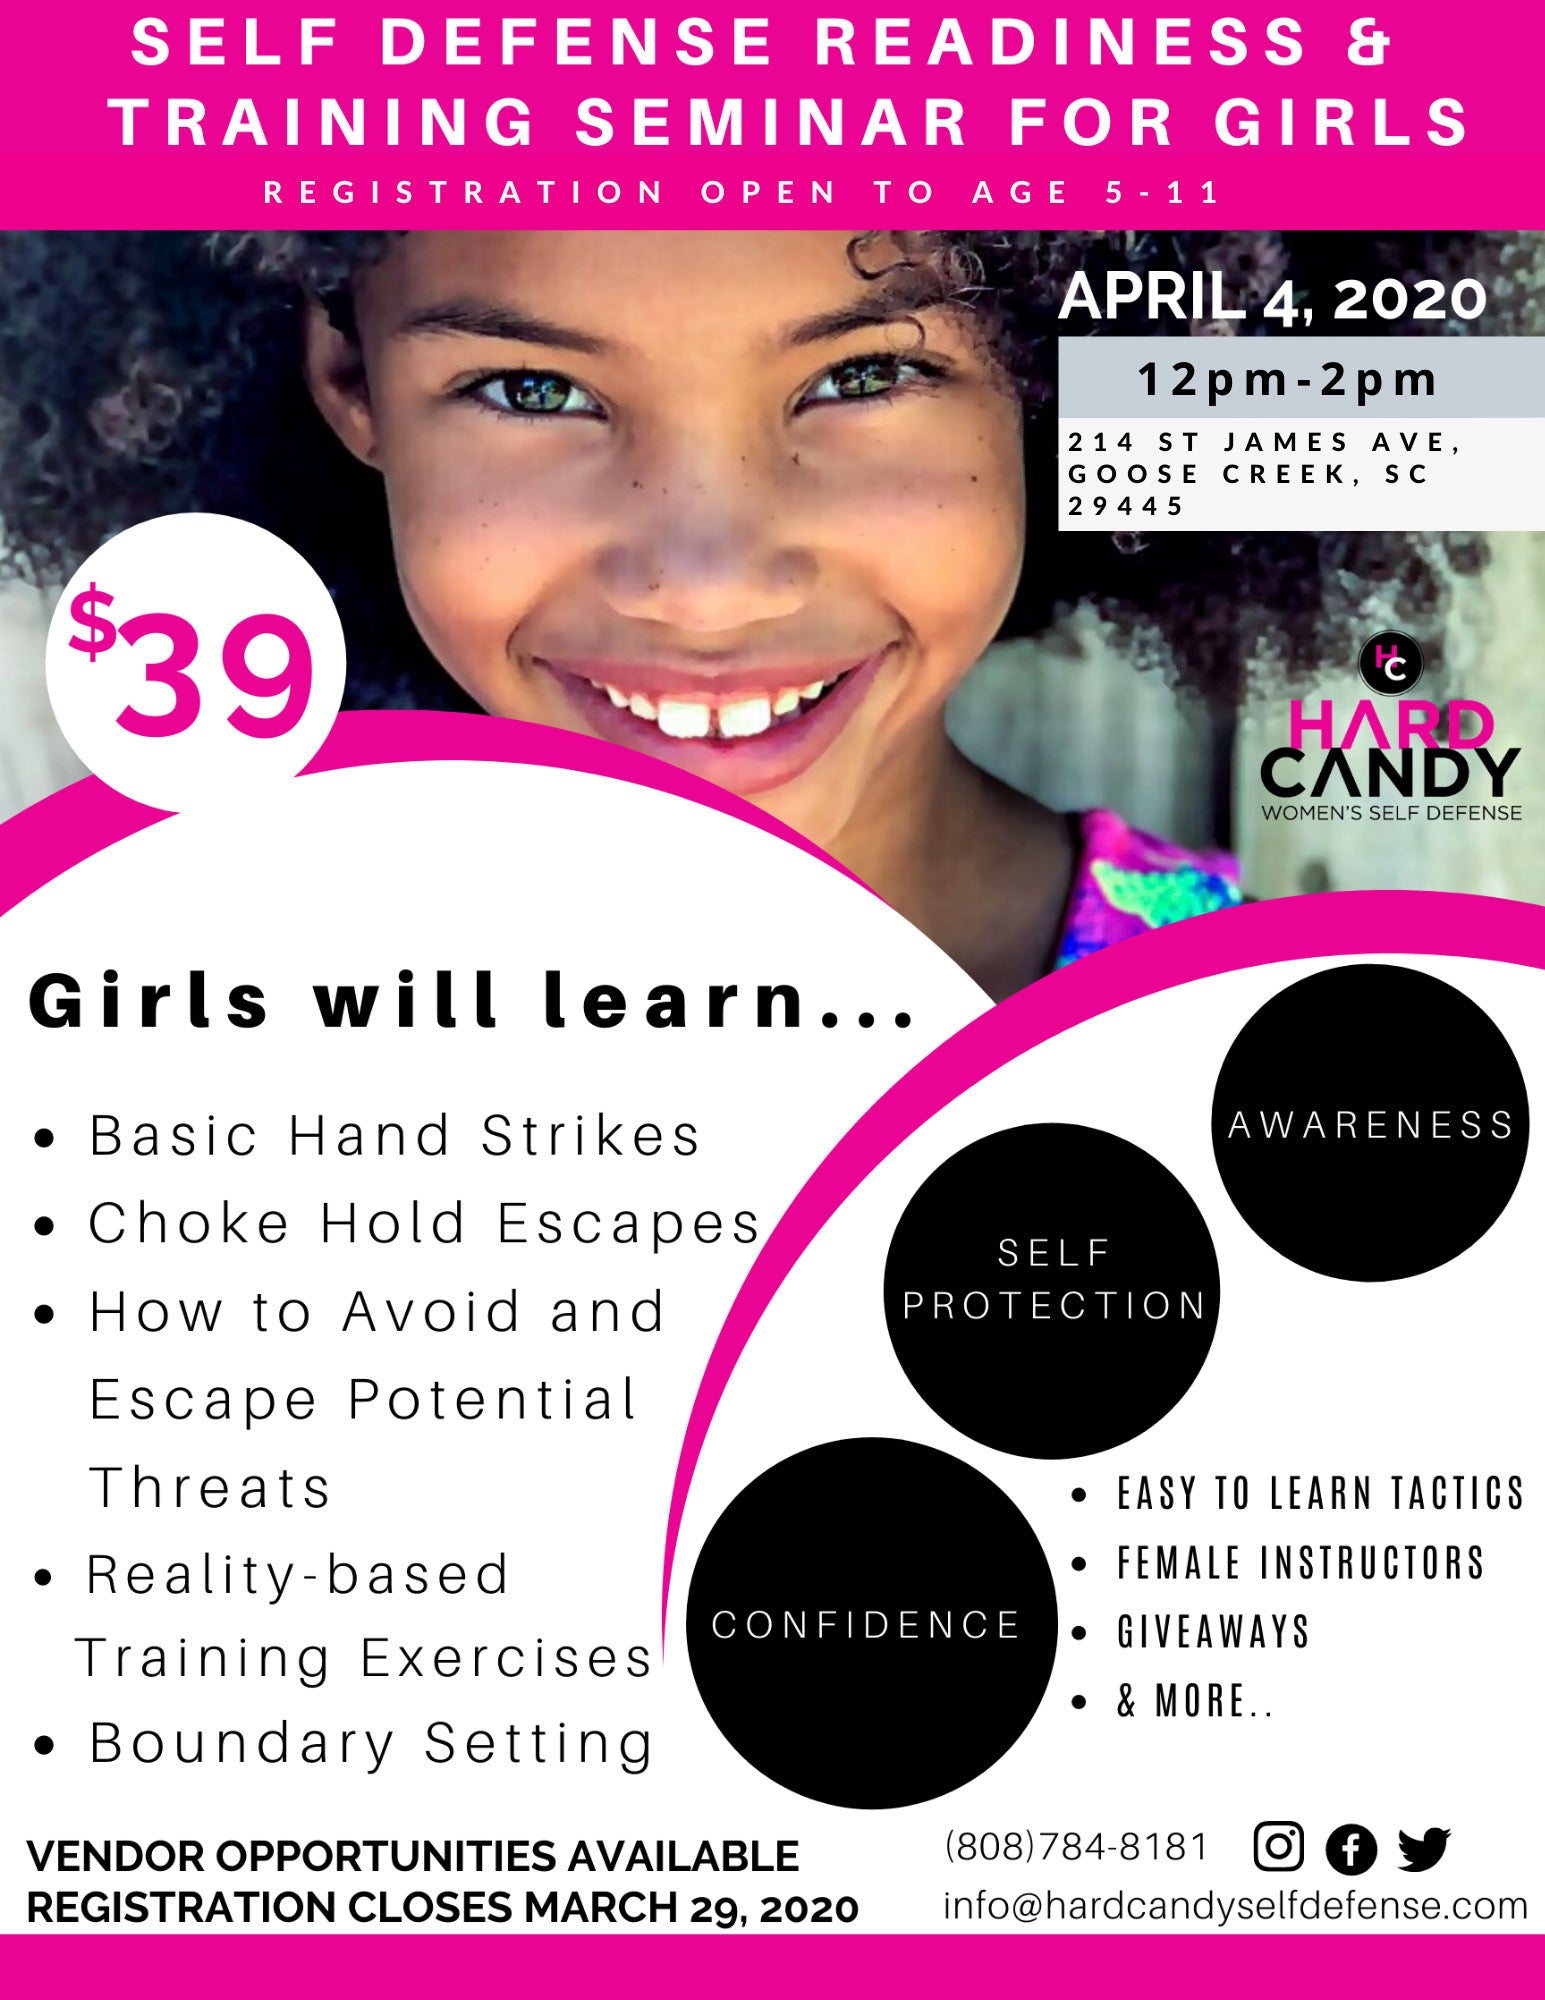 Self Defense Training & Readiness For Girls 5-11